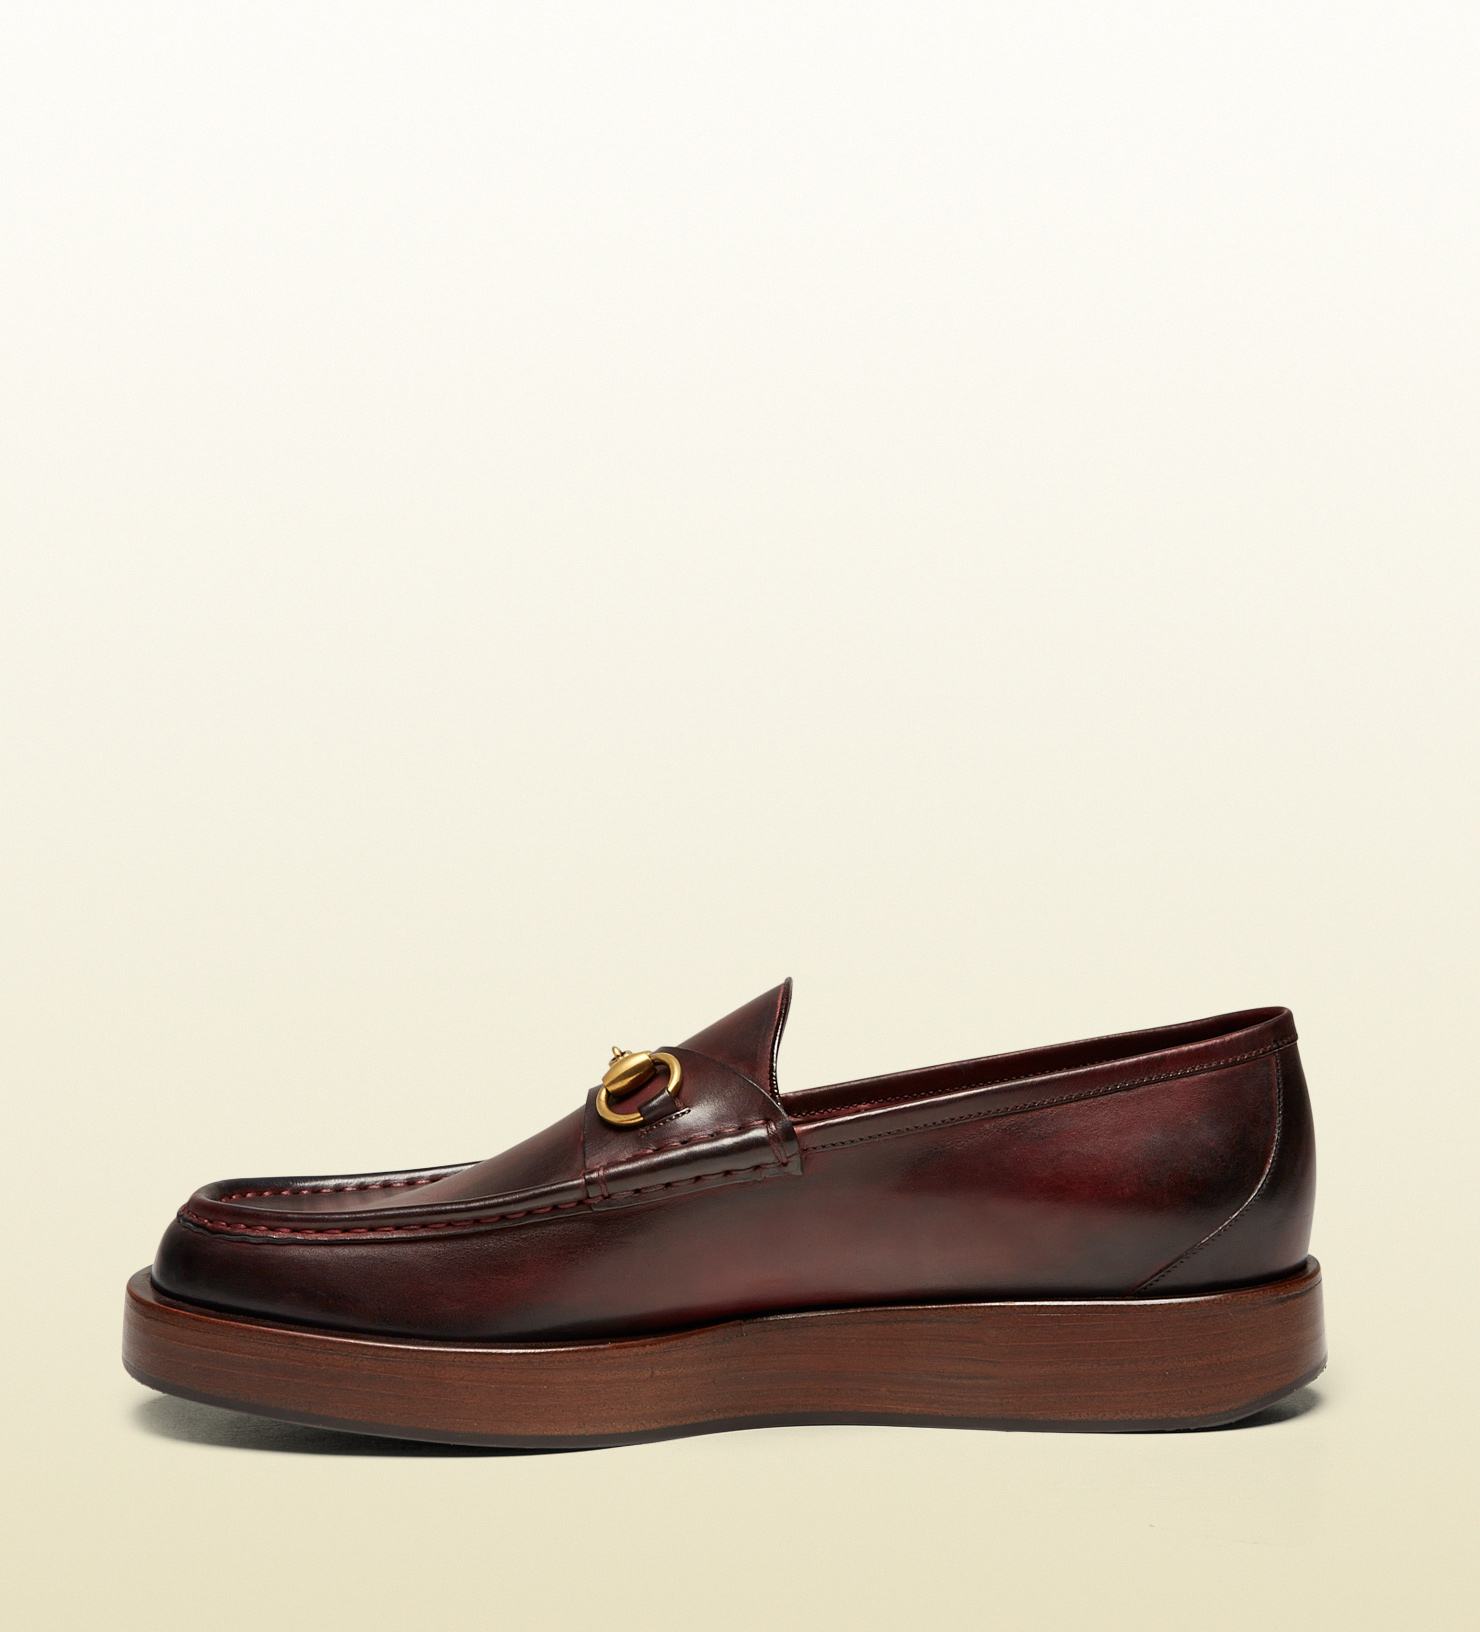 2471a01ebd5b Lyst - Gucci Shaded Leather Platform Horsebit Loafer in Brown for Men